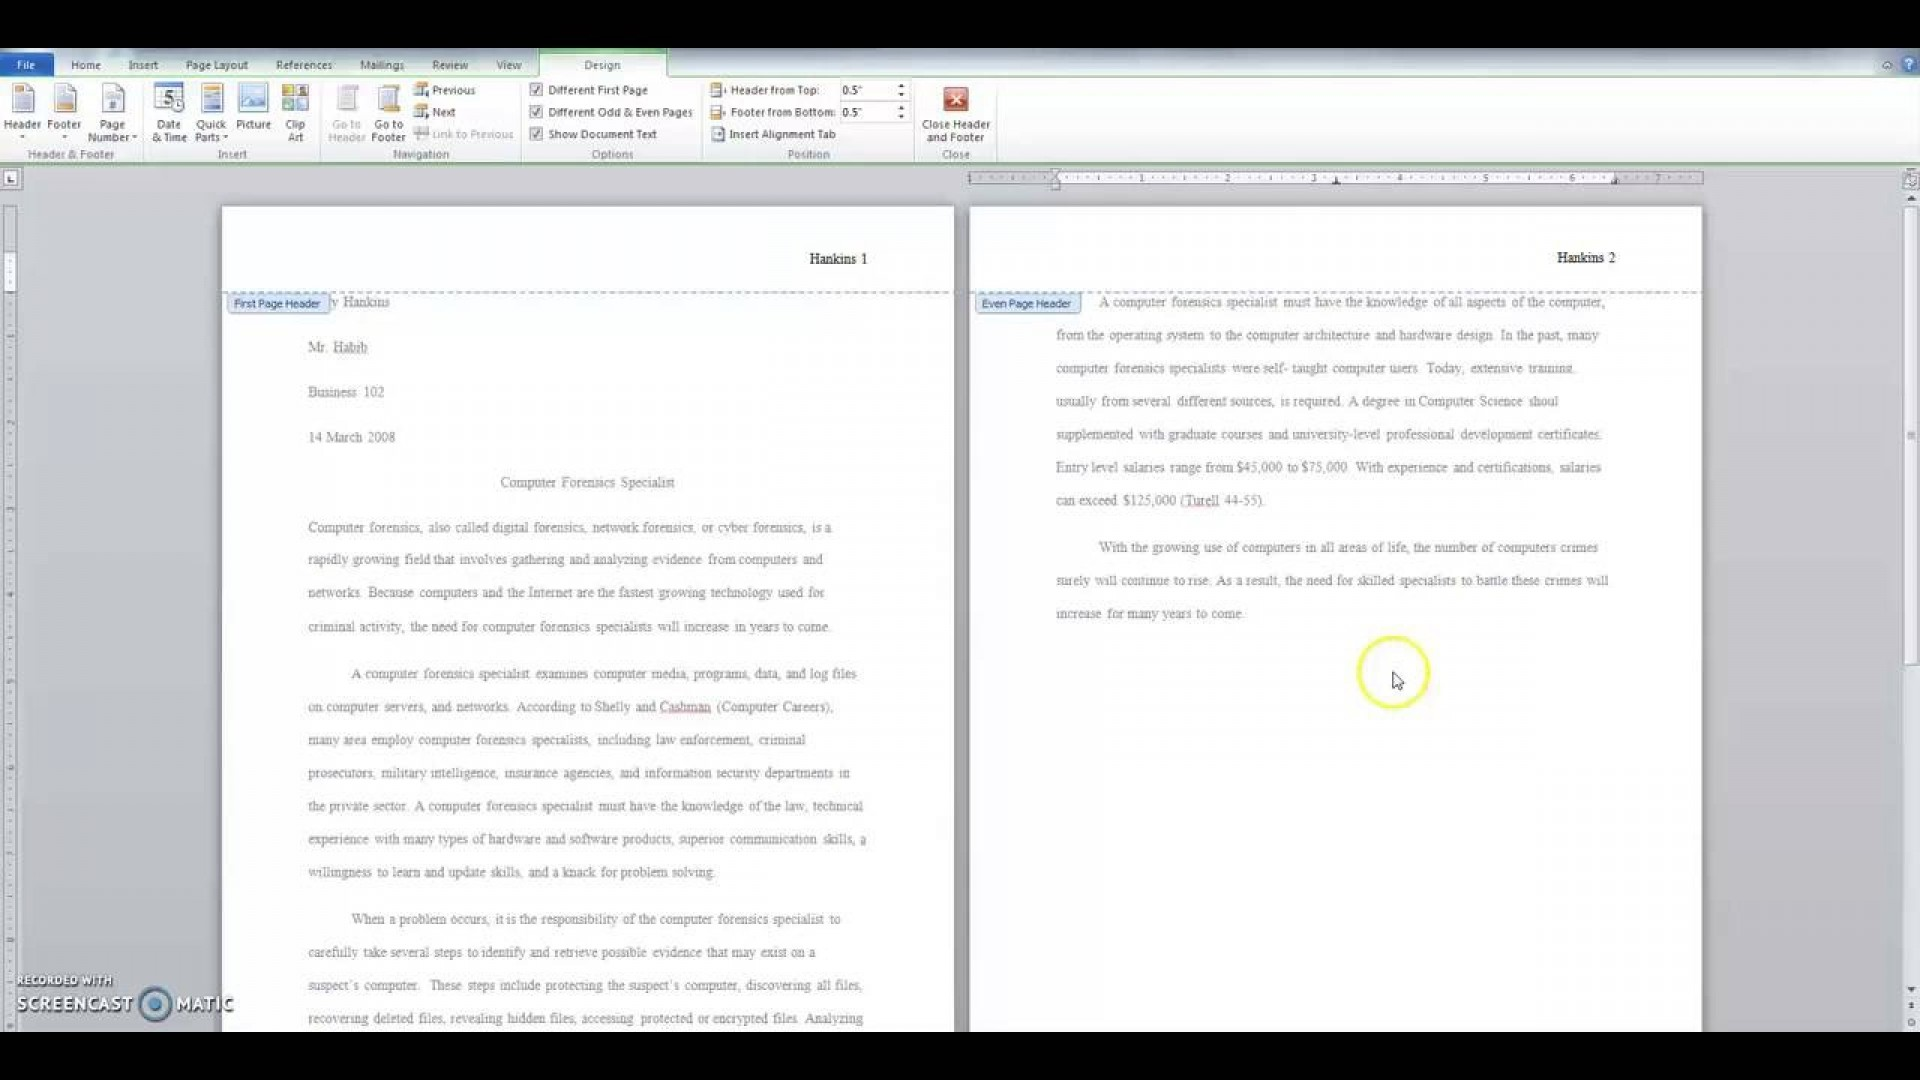 011 Maxresdefault Research Paper Format Of Astounding A Introduction Example Using Apa Style Mla With Title Page 1920